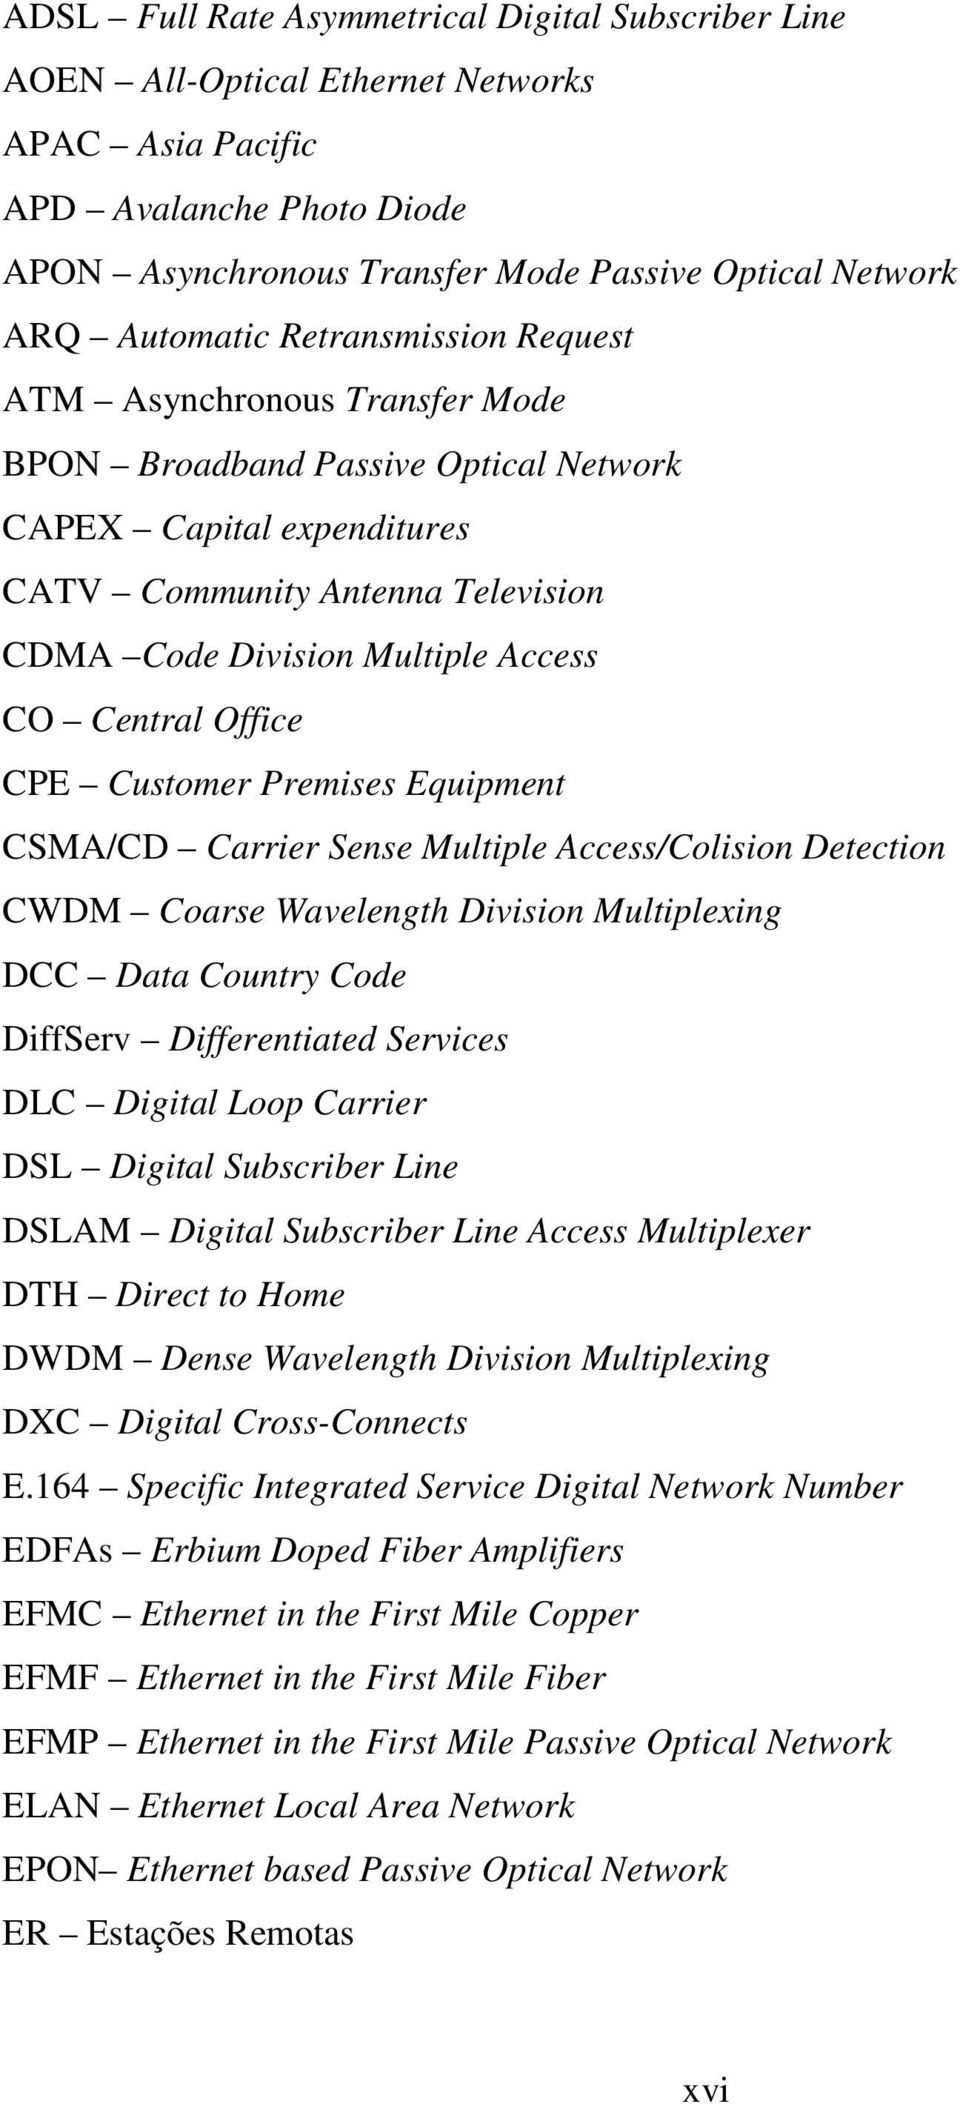 CO Central Office CPE Customer Premises Equipment CSMA/CD Carrier Sense Multiple Access/Colision Detection CWDM Coarse Wavelength Division Multiplexing DCC Data Country Code DiffServ Differentiated